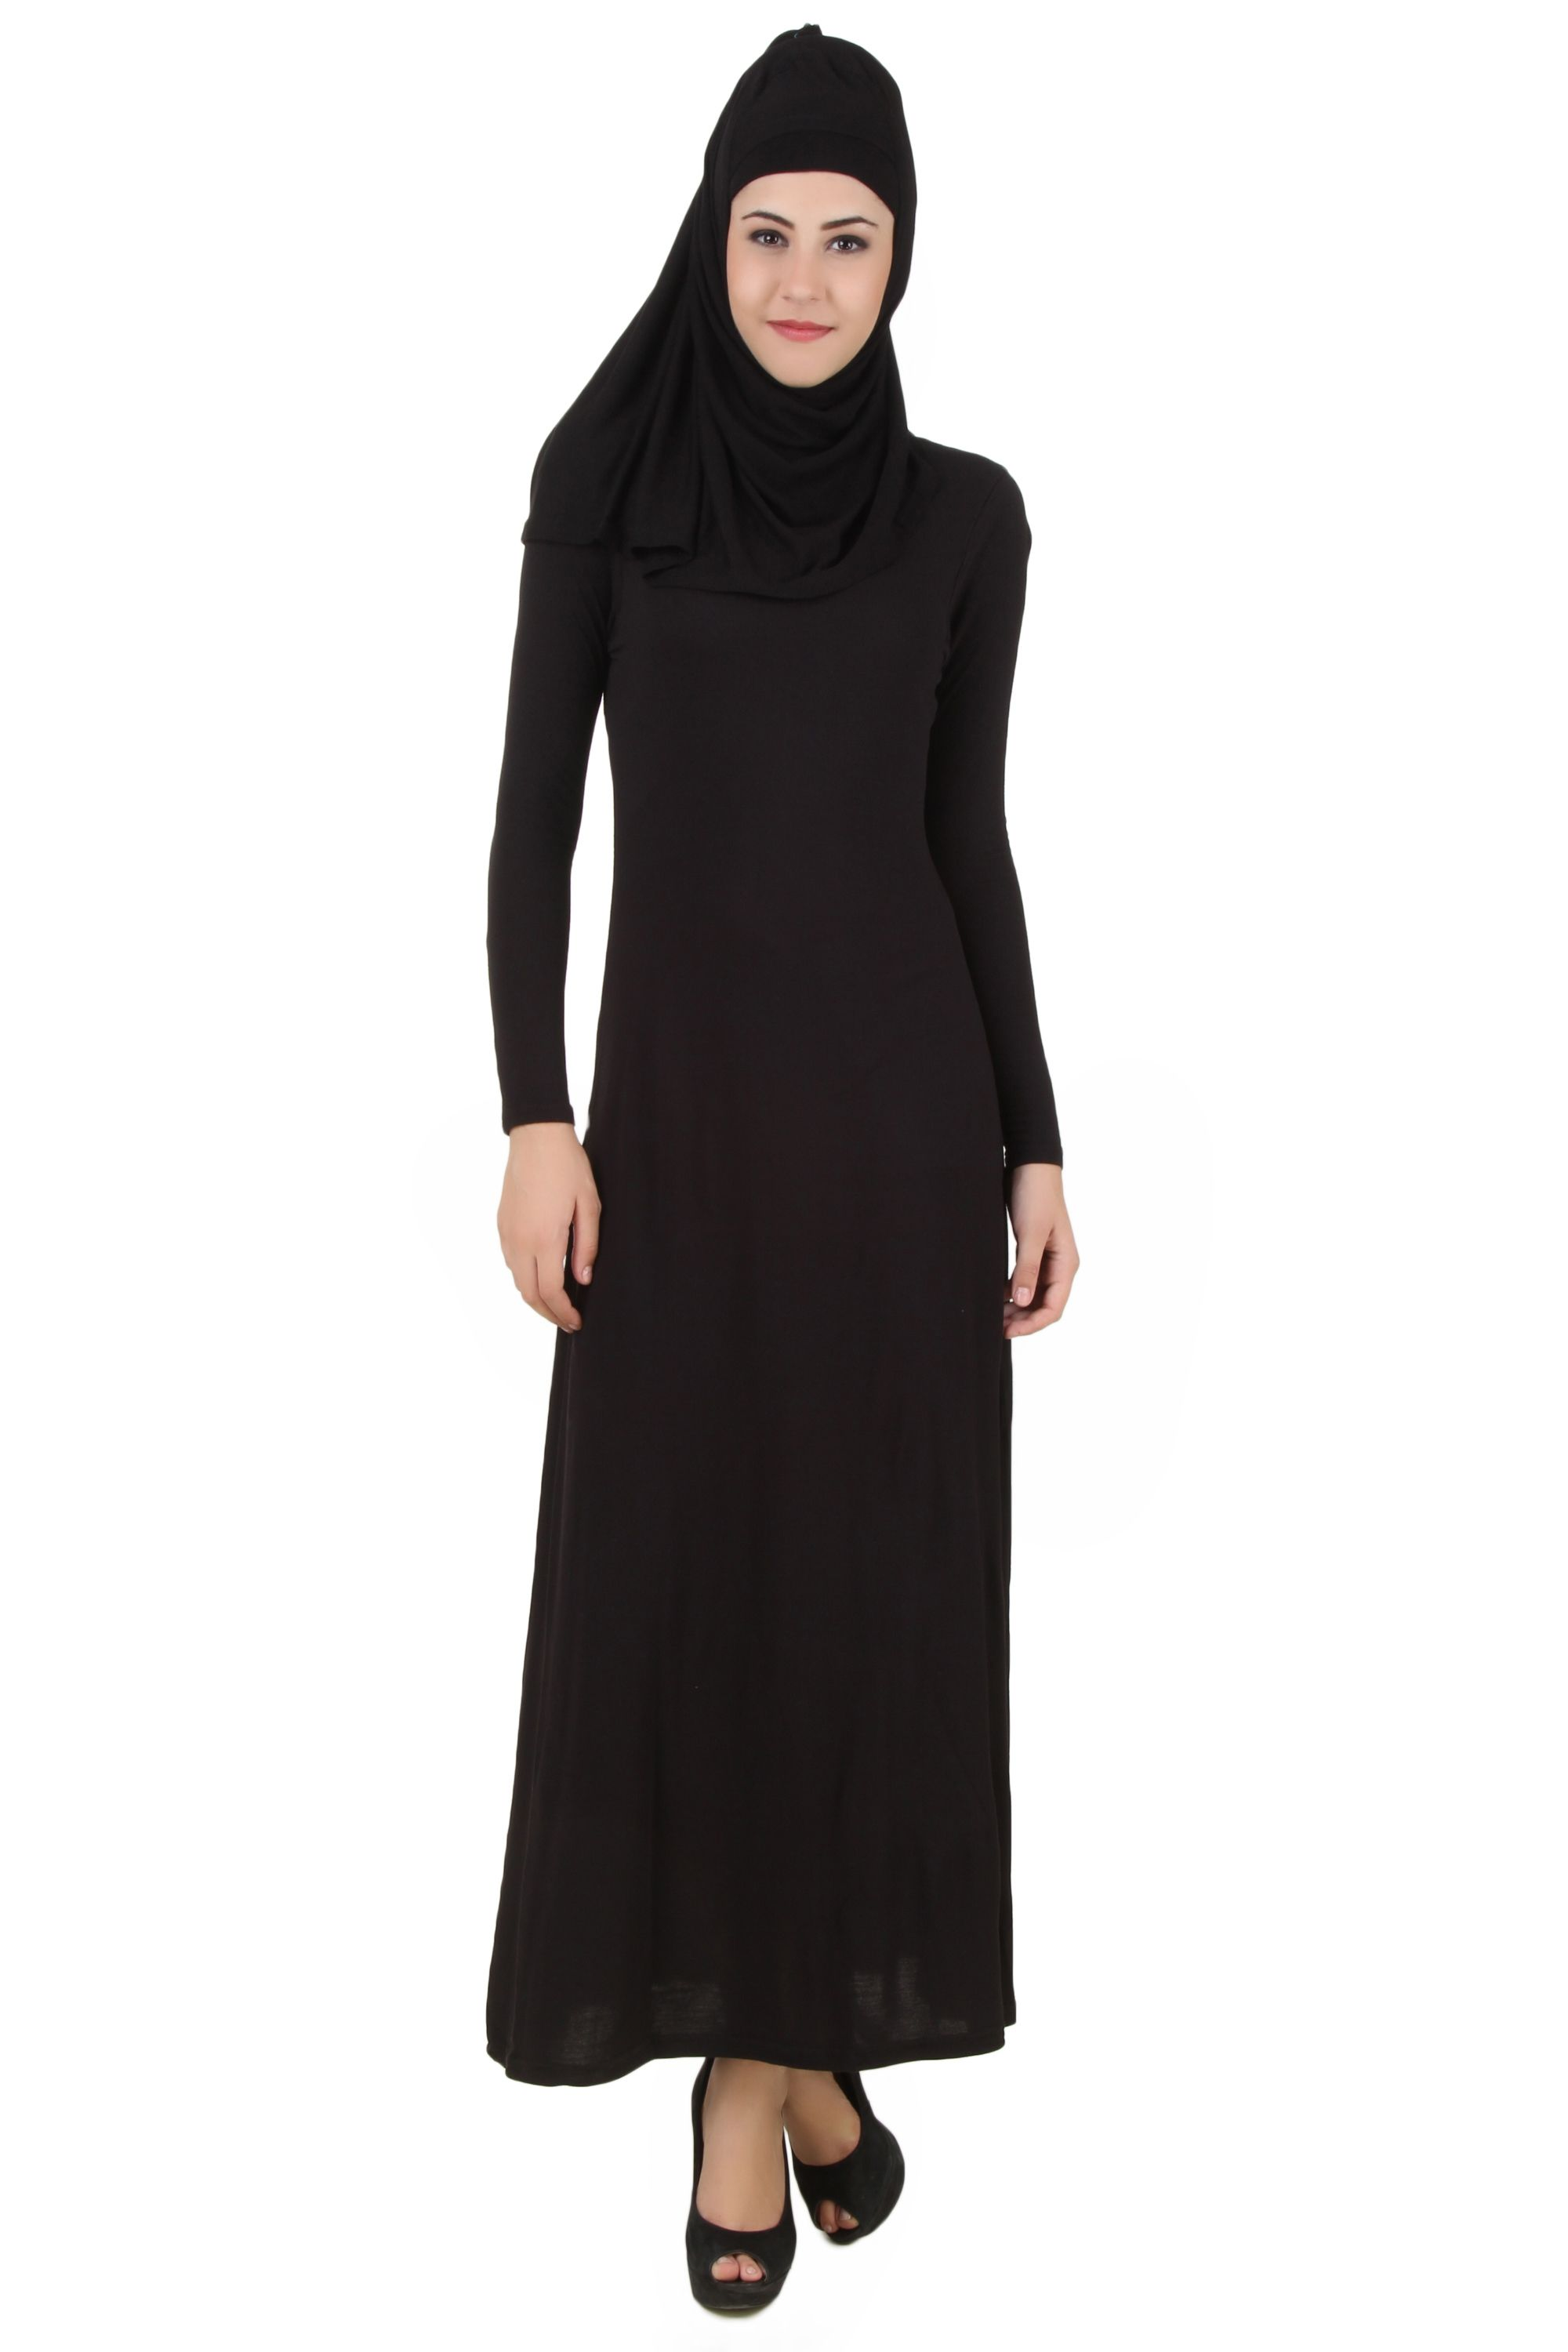 47bc1f3397b Tunics. Islam. MyBatua Asna Black Jersey Rayon Abaya | Available in sizes  XS to 7XL, lenth 50